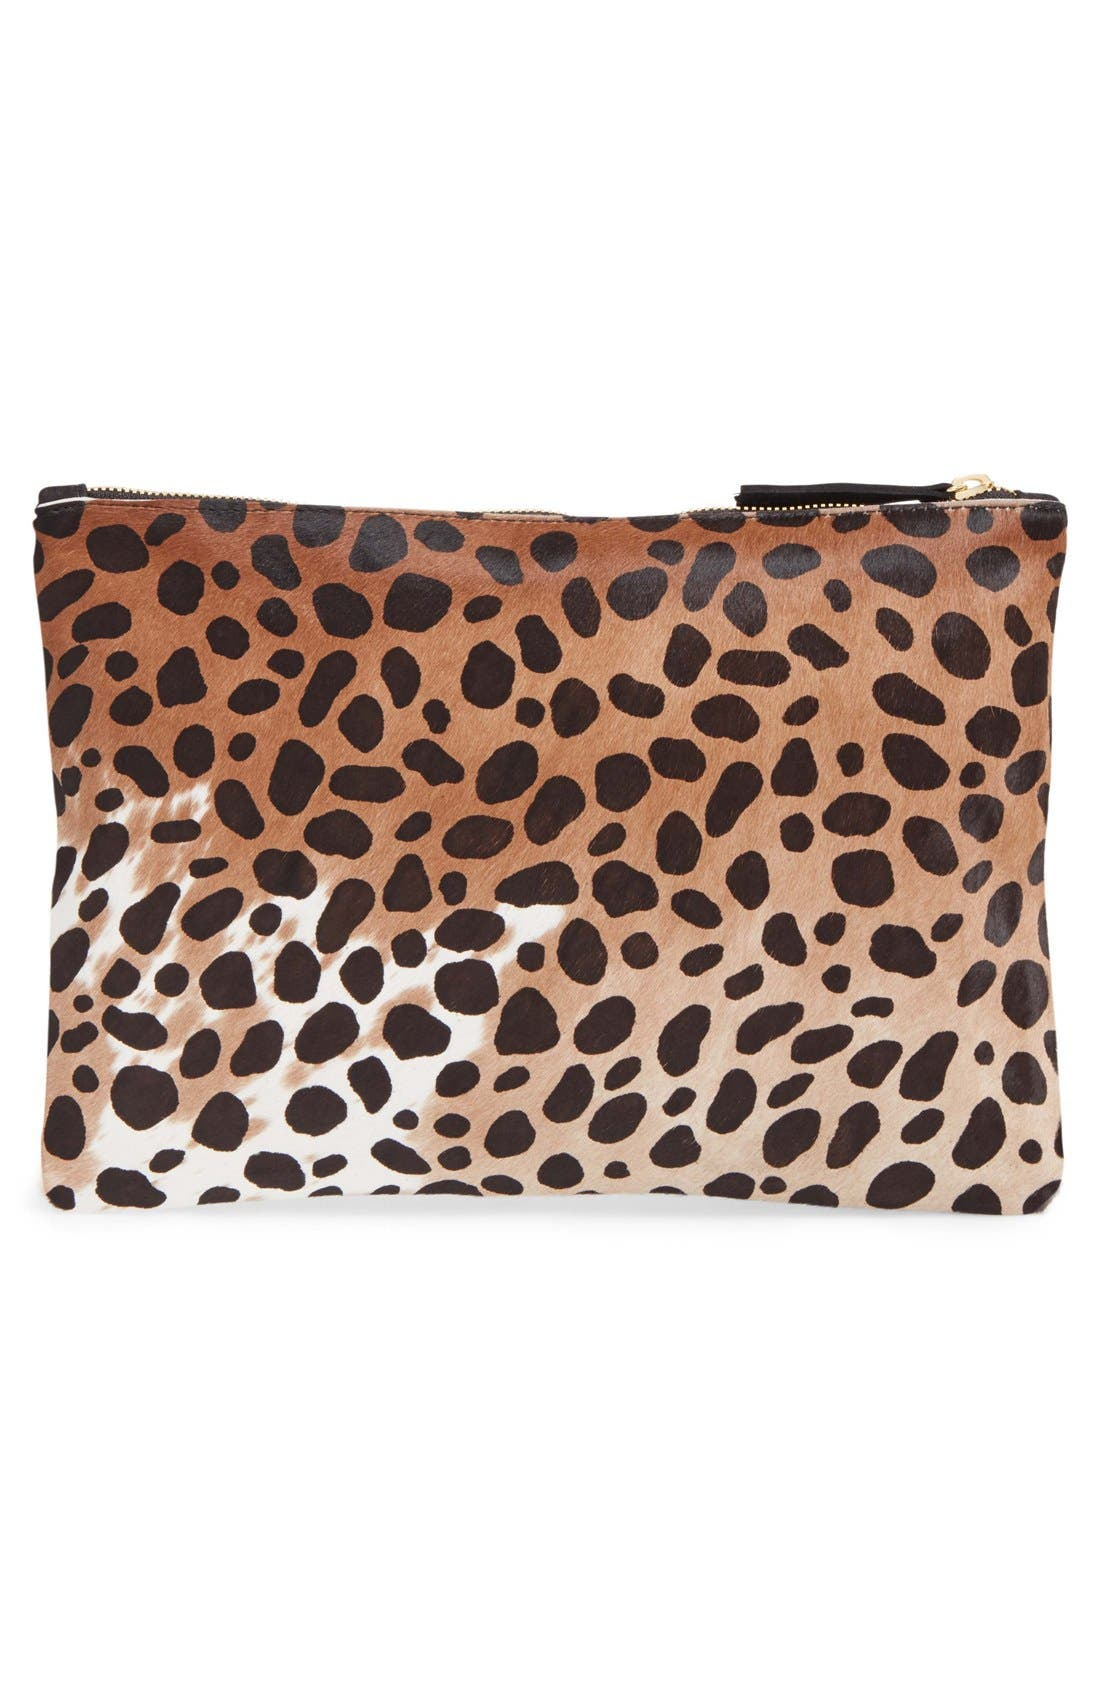 Alternate Image 3  - Clare V. Genuine Calf Hair Leopard Print Zip Clutch